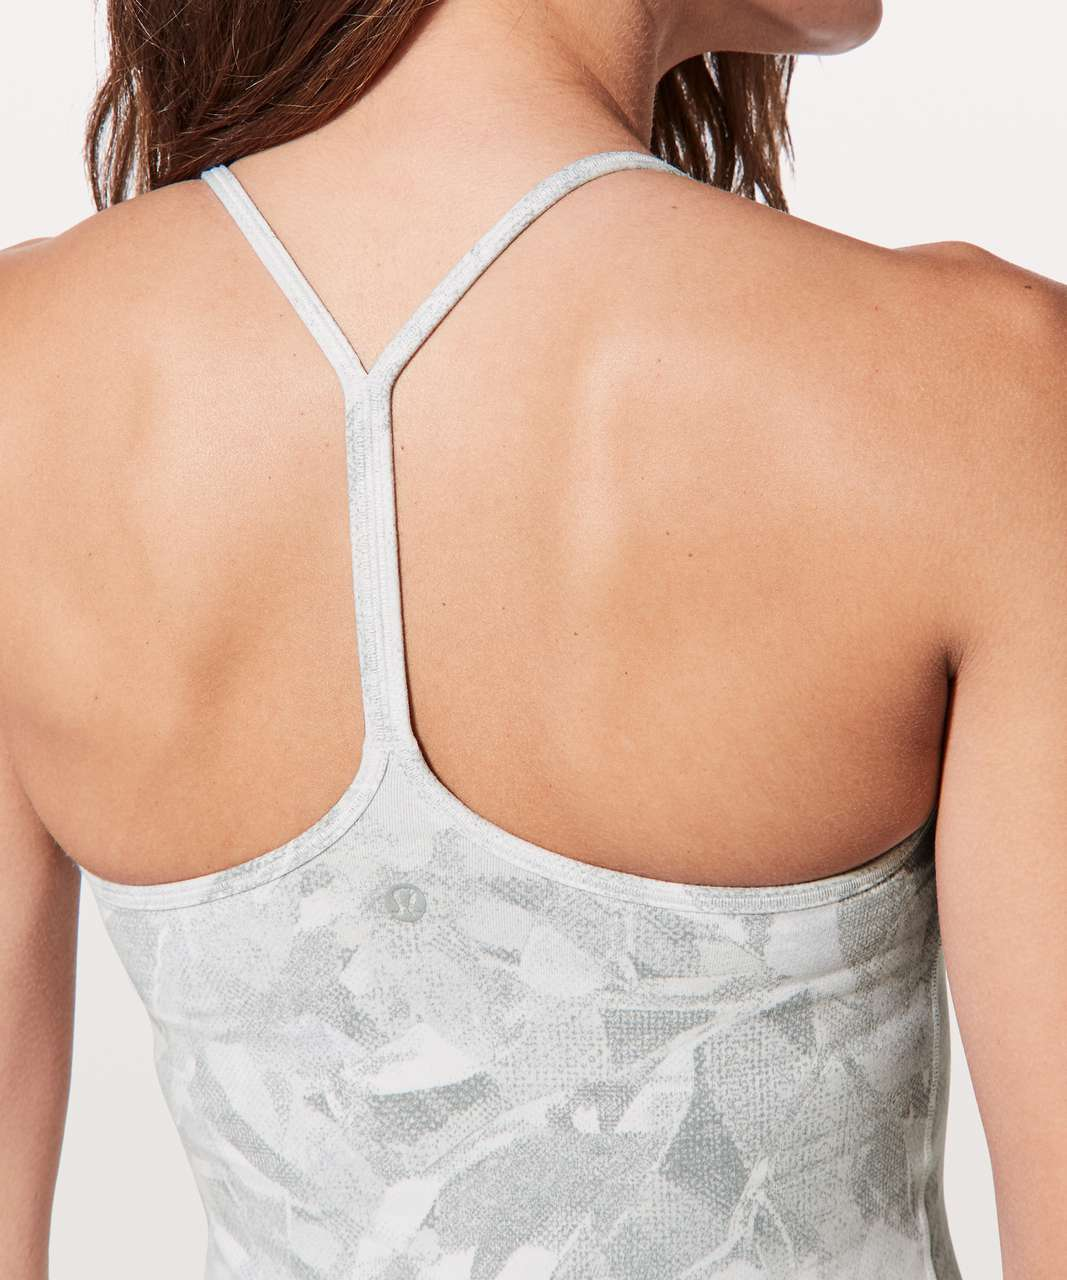 Lululemon Power Pose Tank *Light Support For A/B Cup - Jasmine White Multi / Alpine White